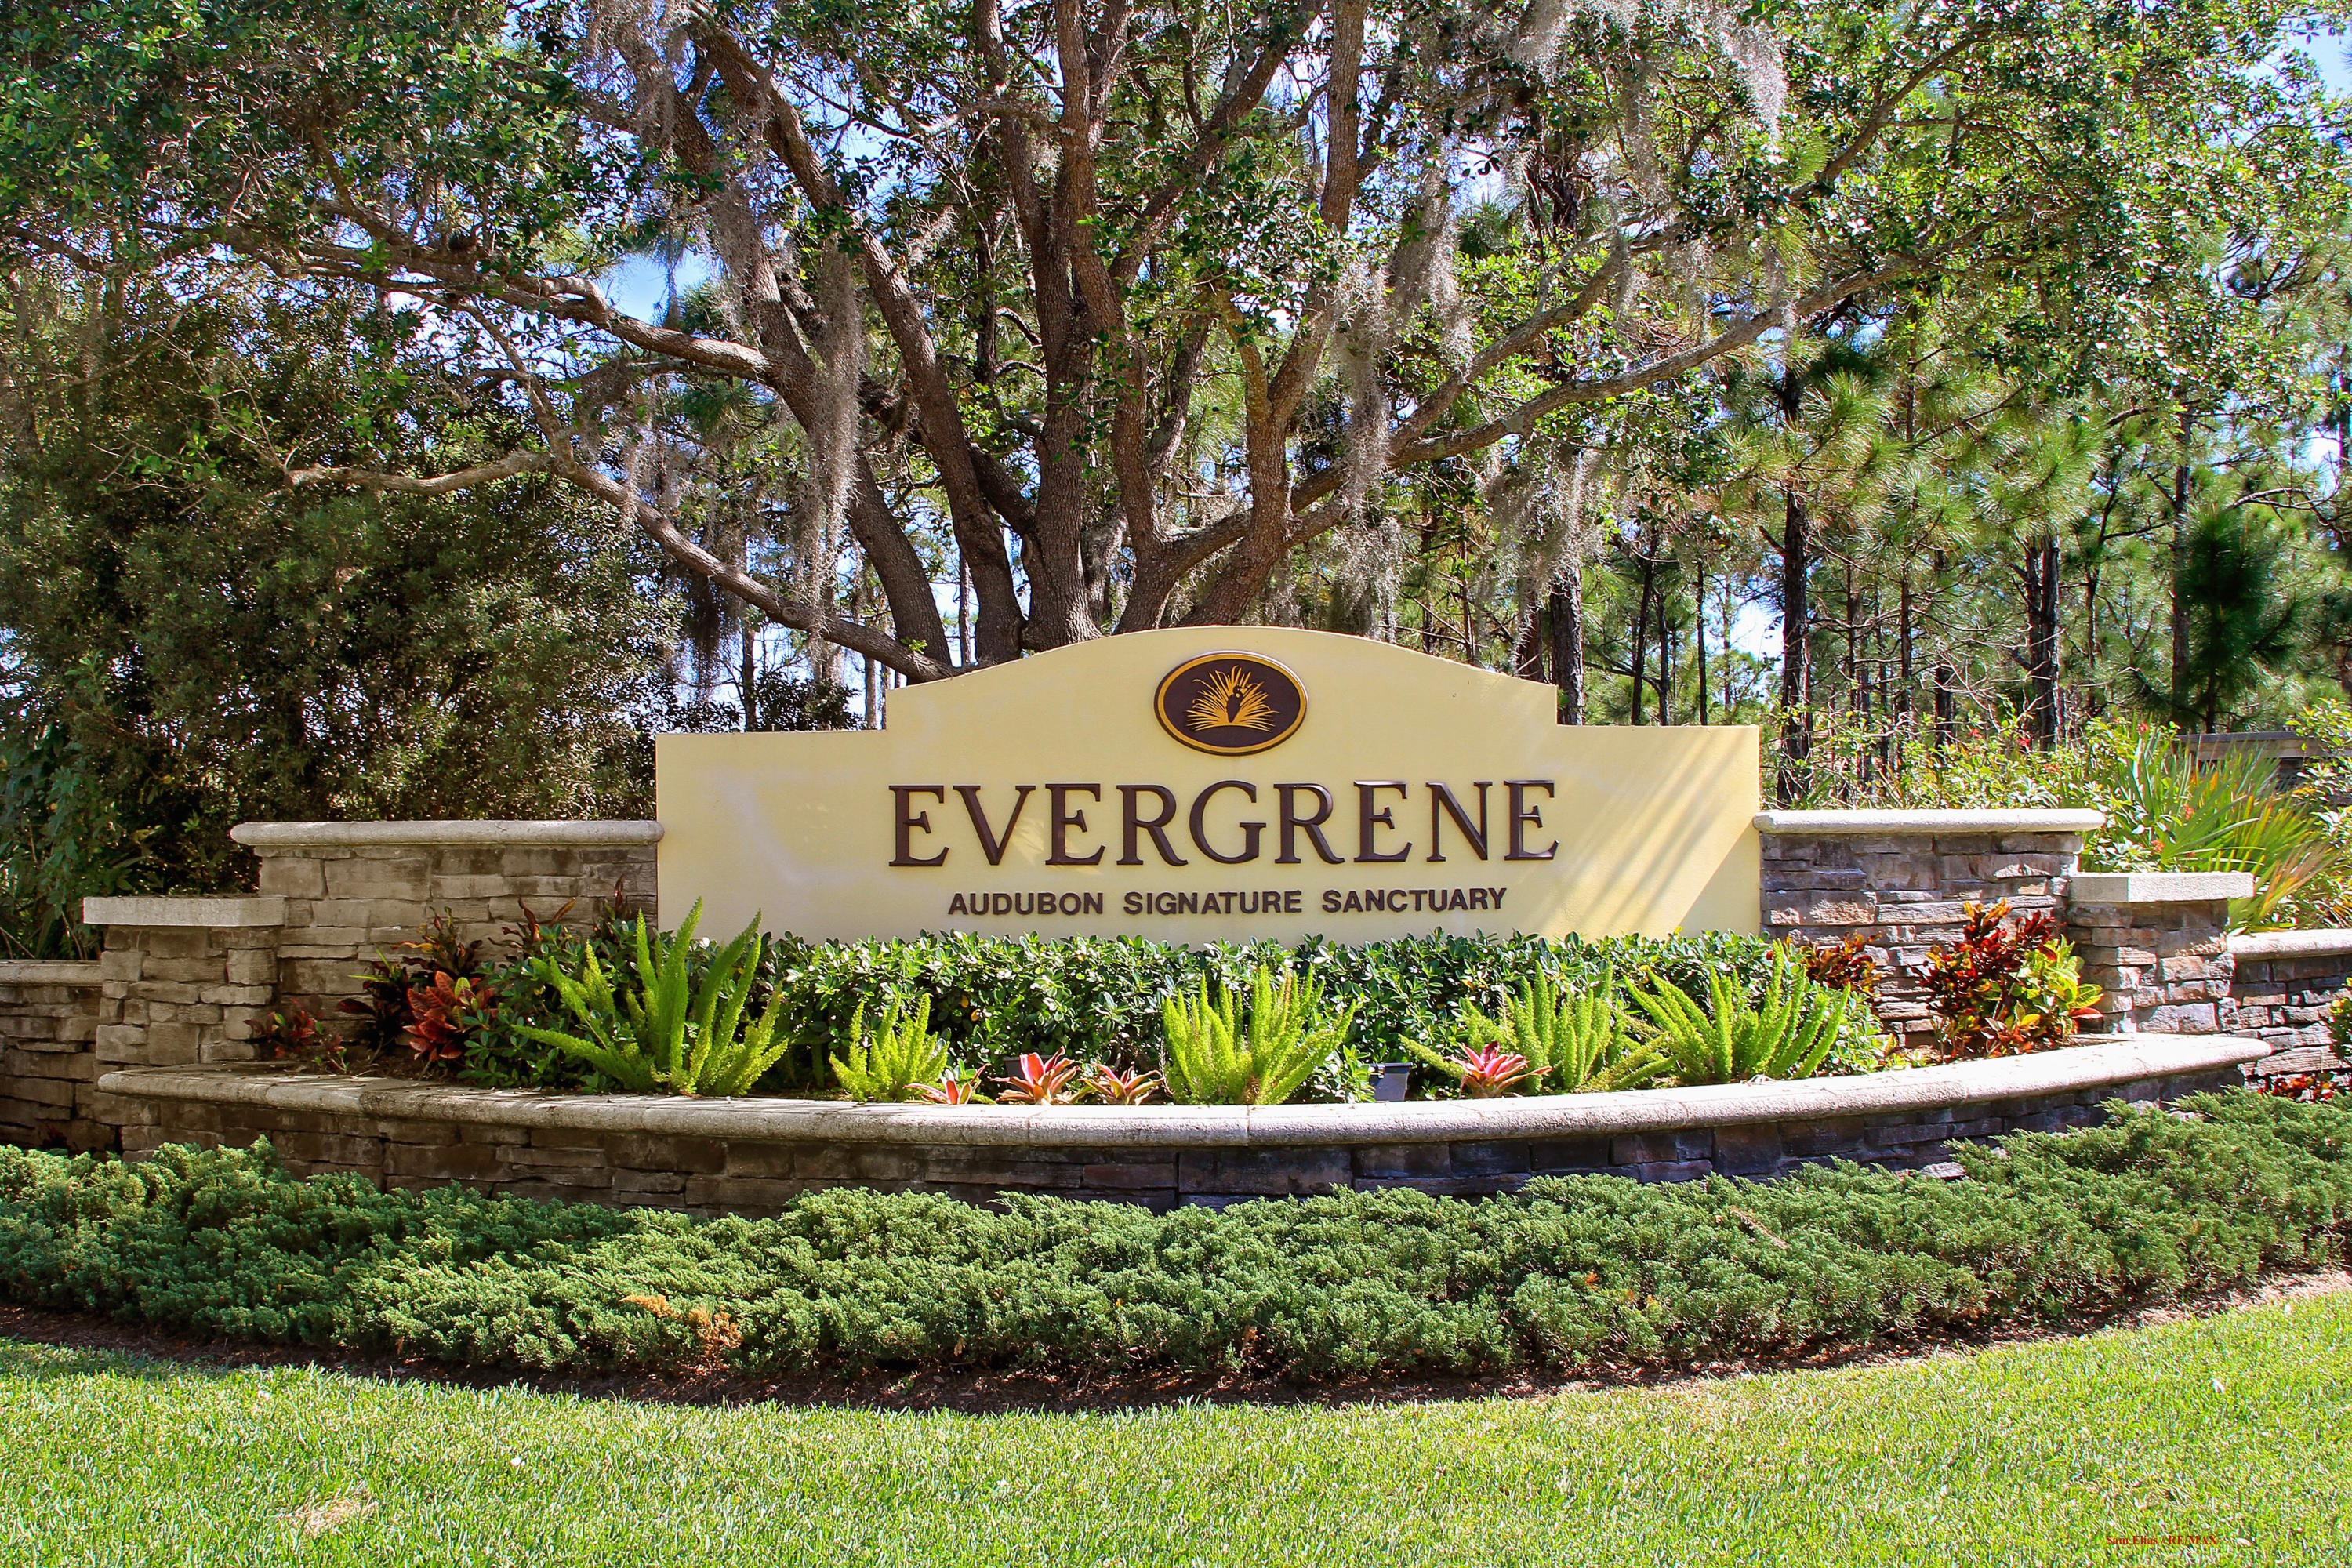 EVERGRENE PALM BEACH GARDENS FLORIDA